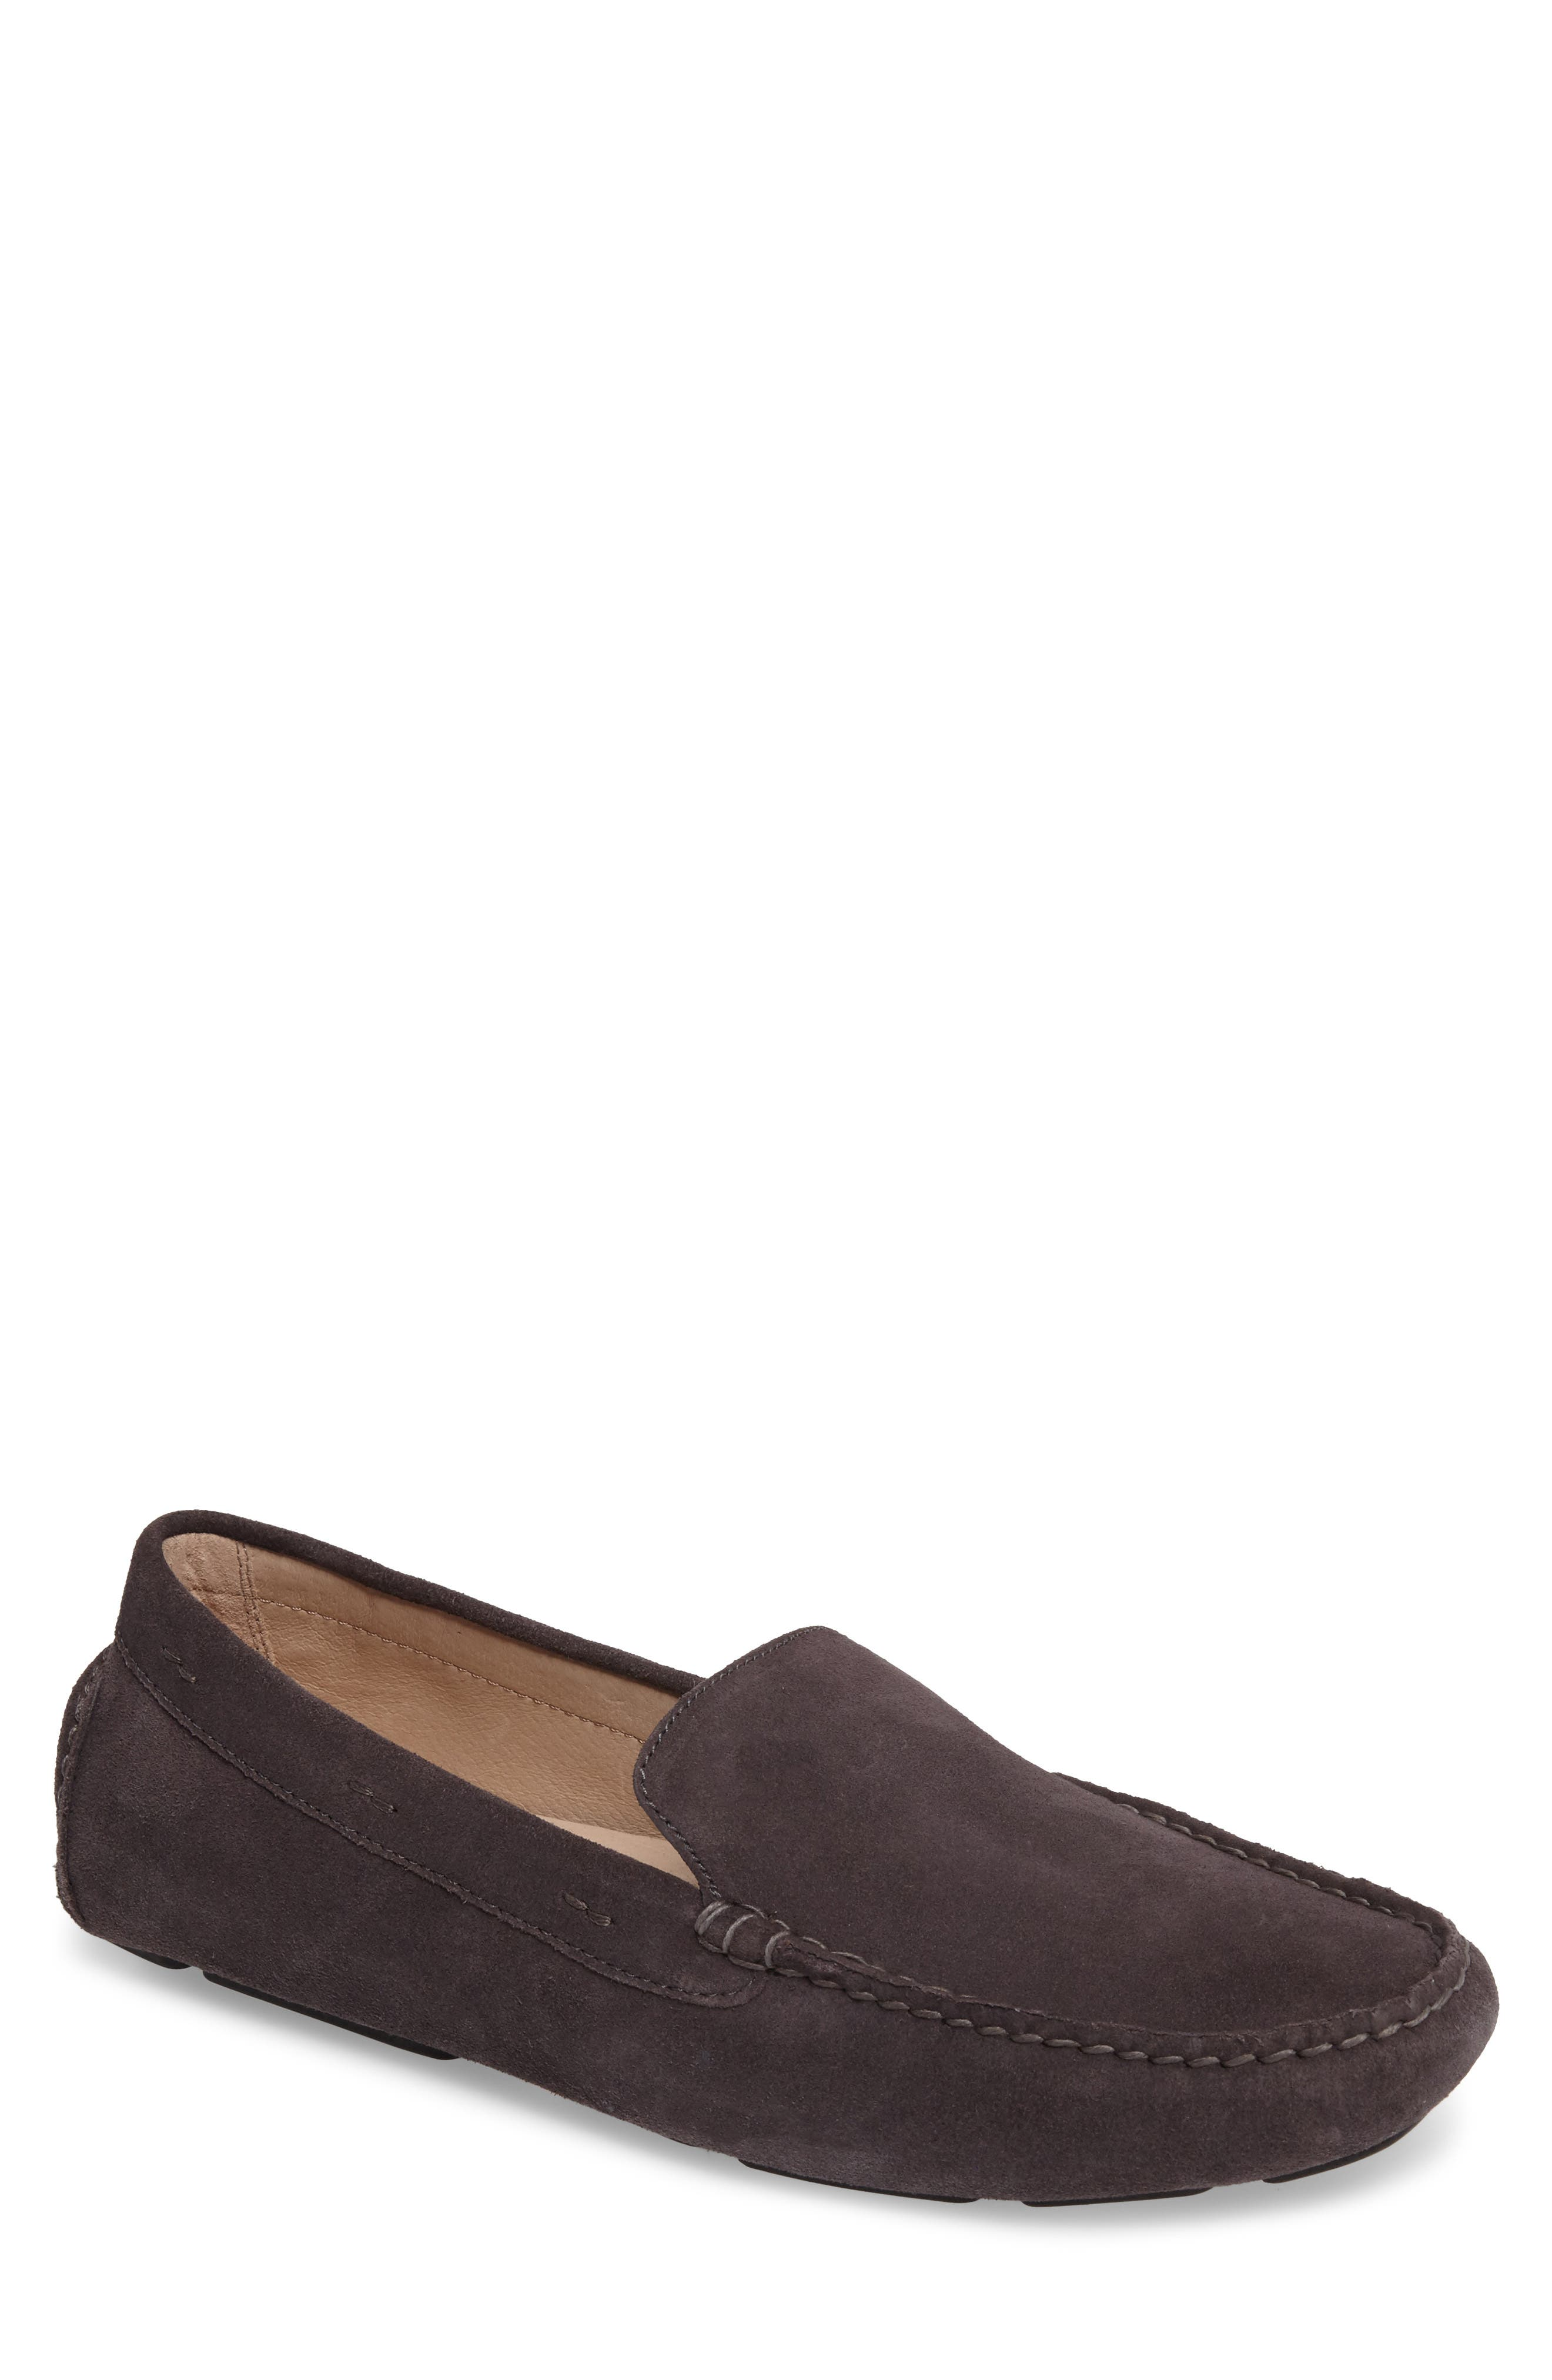 Pagota Driving Loafer,                         Main,                         color,